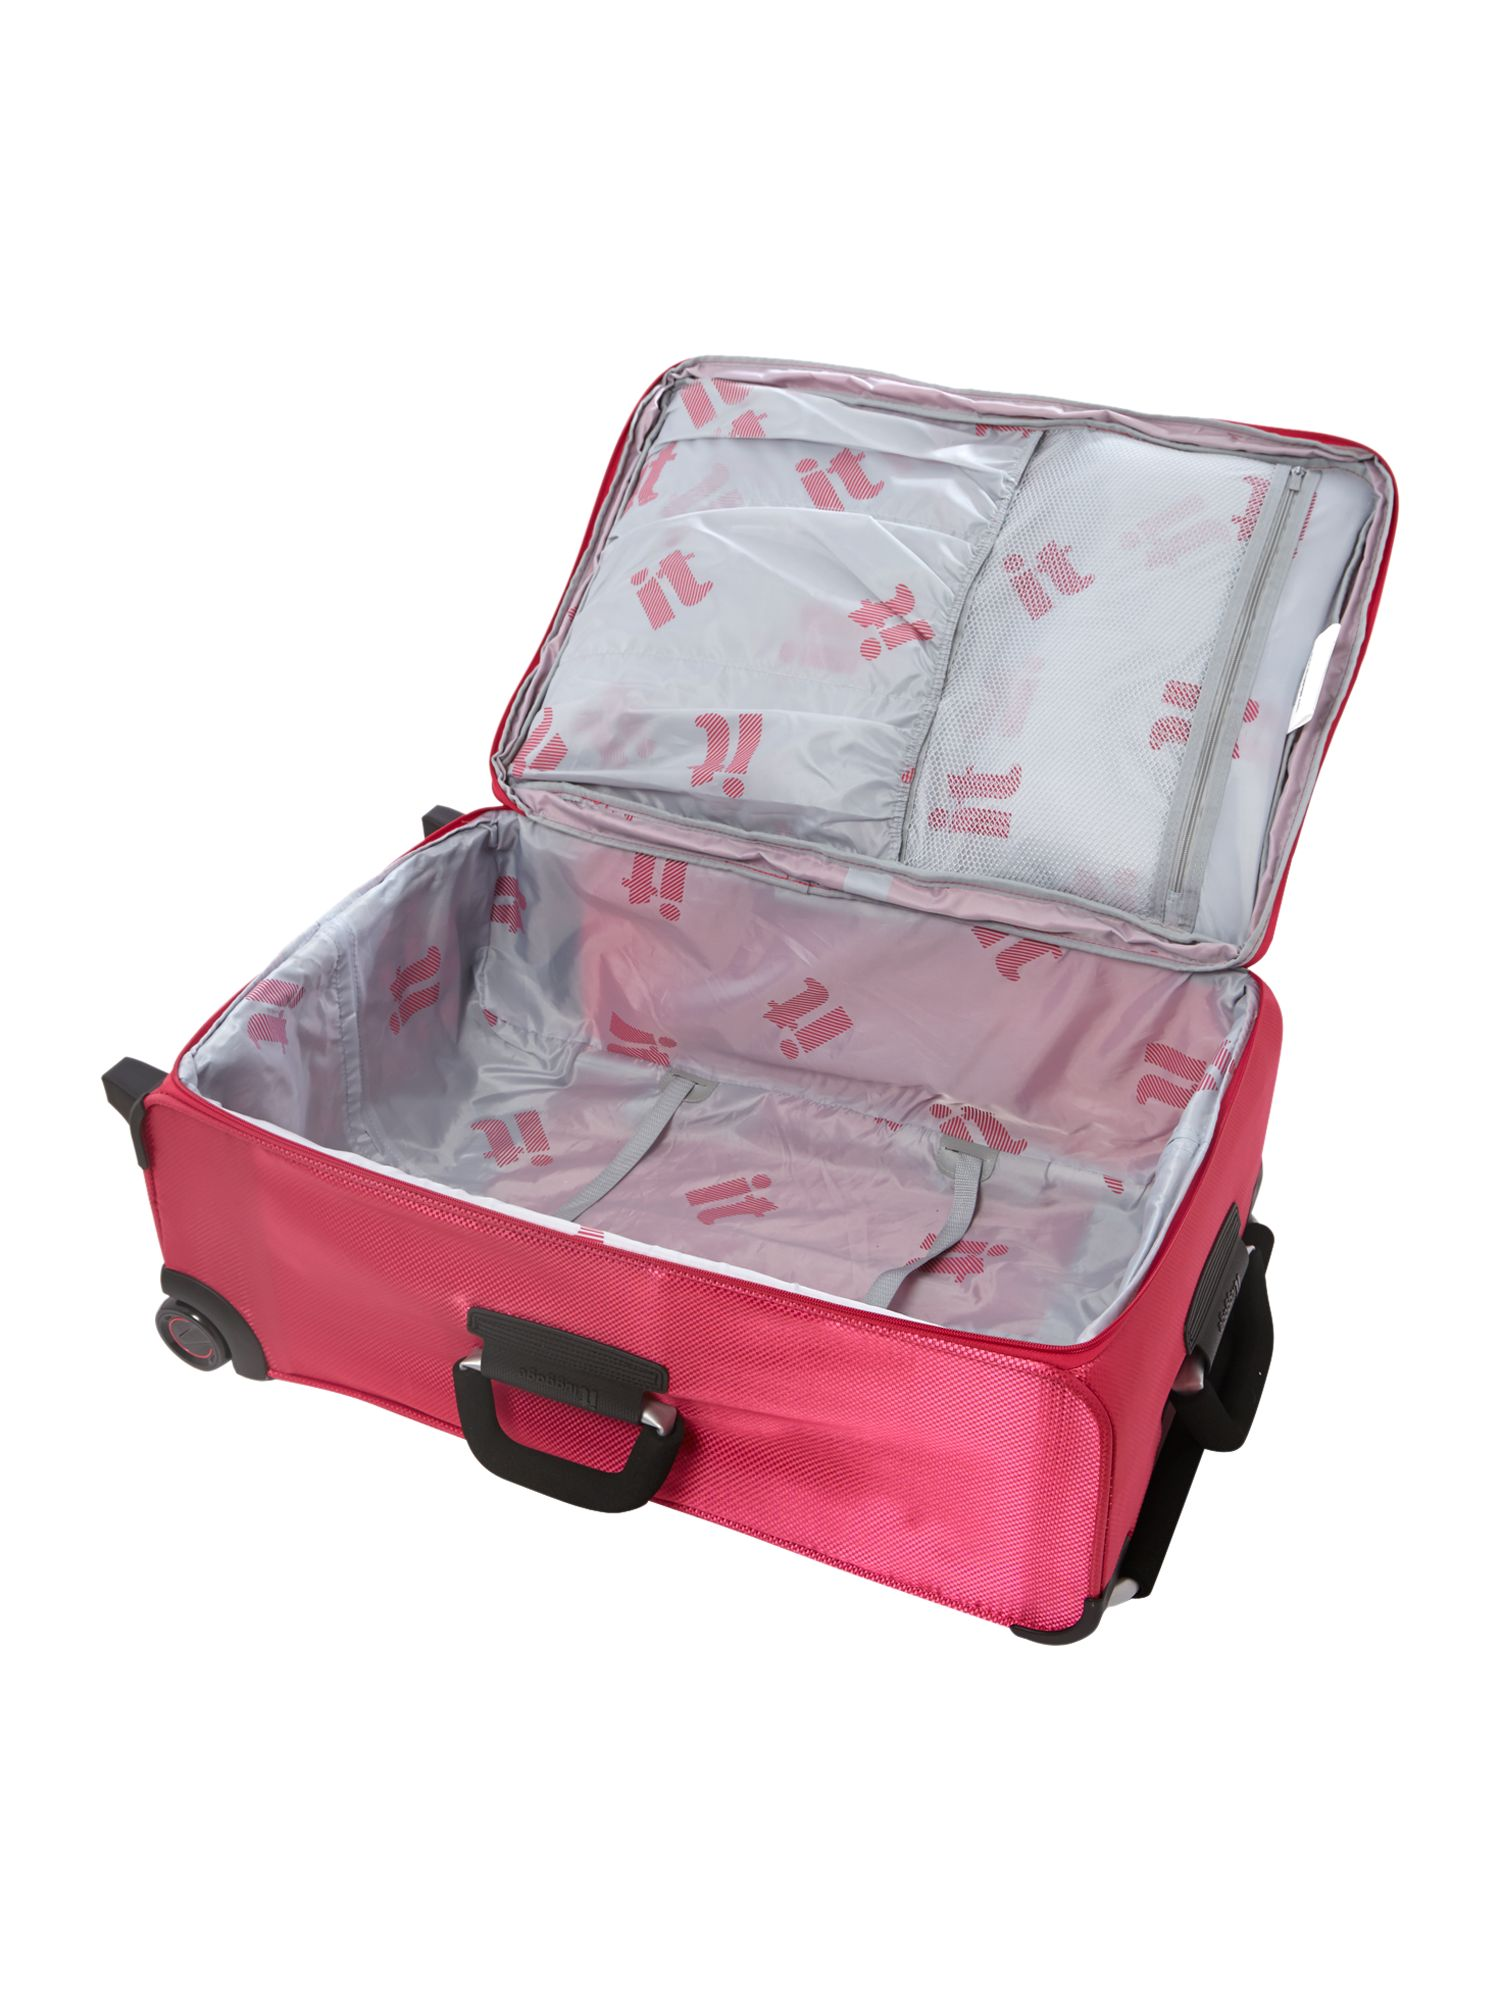 IT pink 2 wheels soft large suitcase